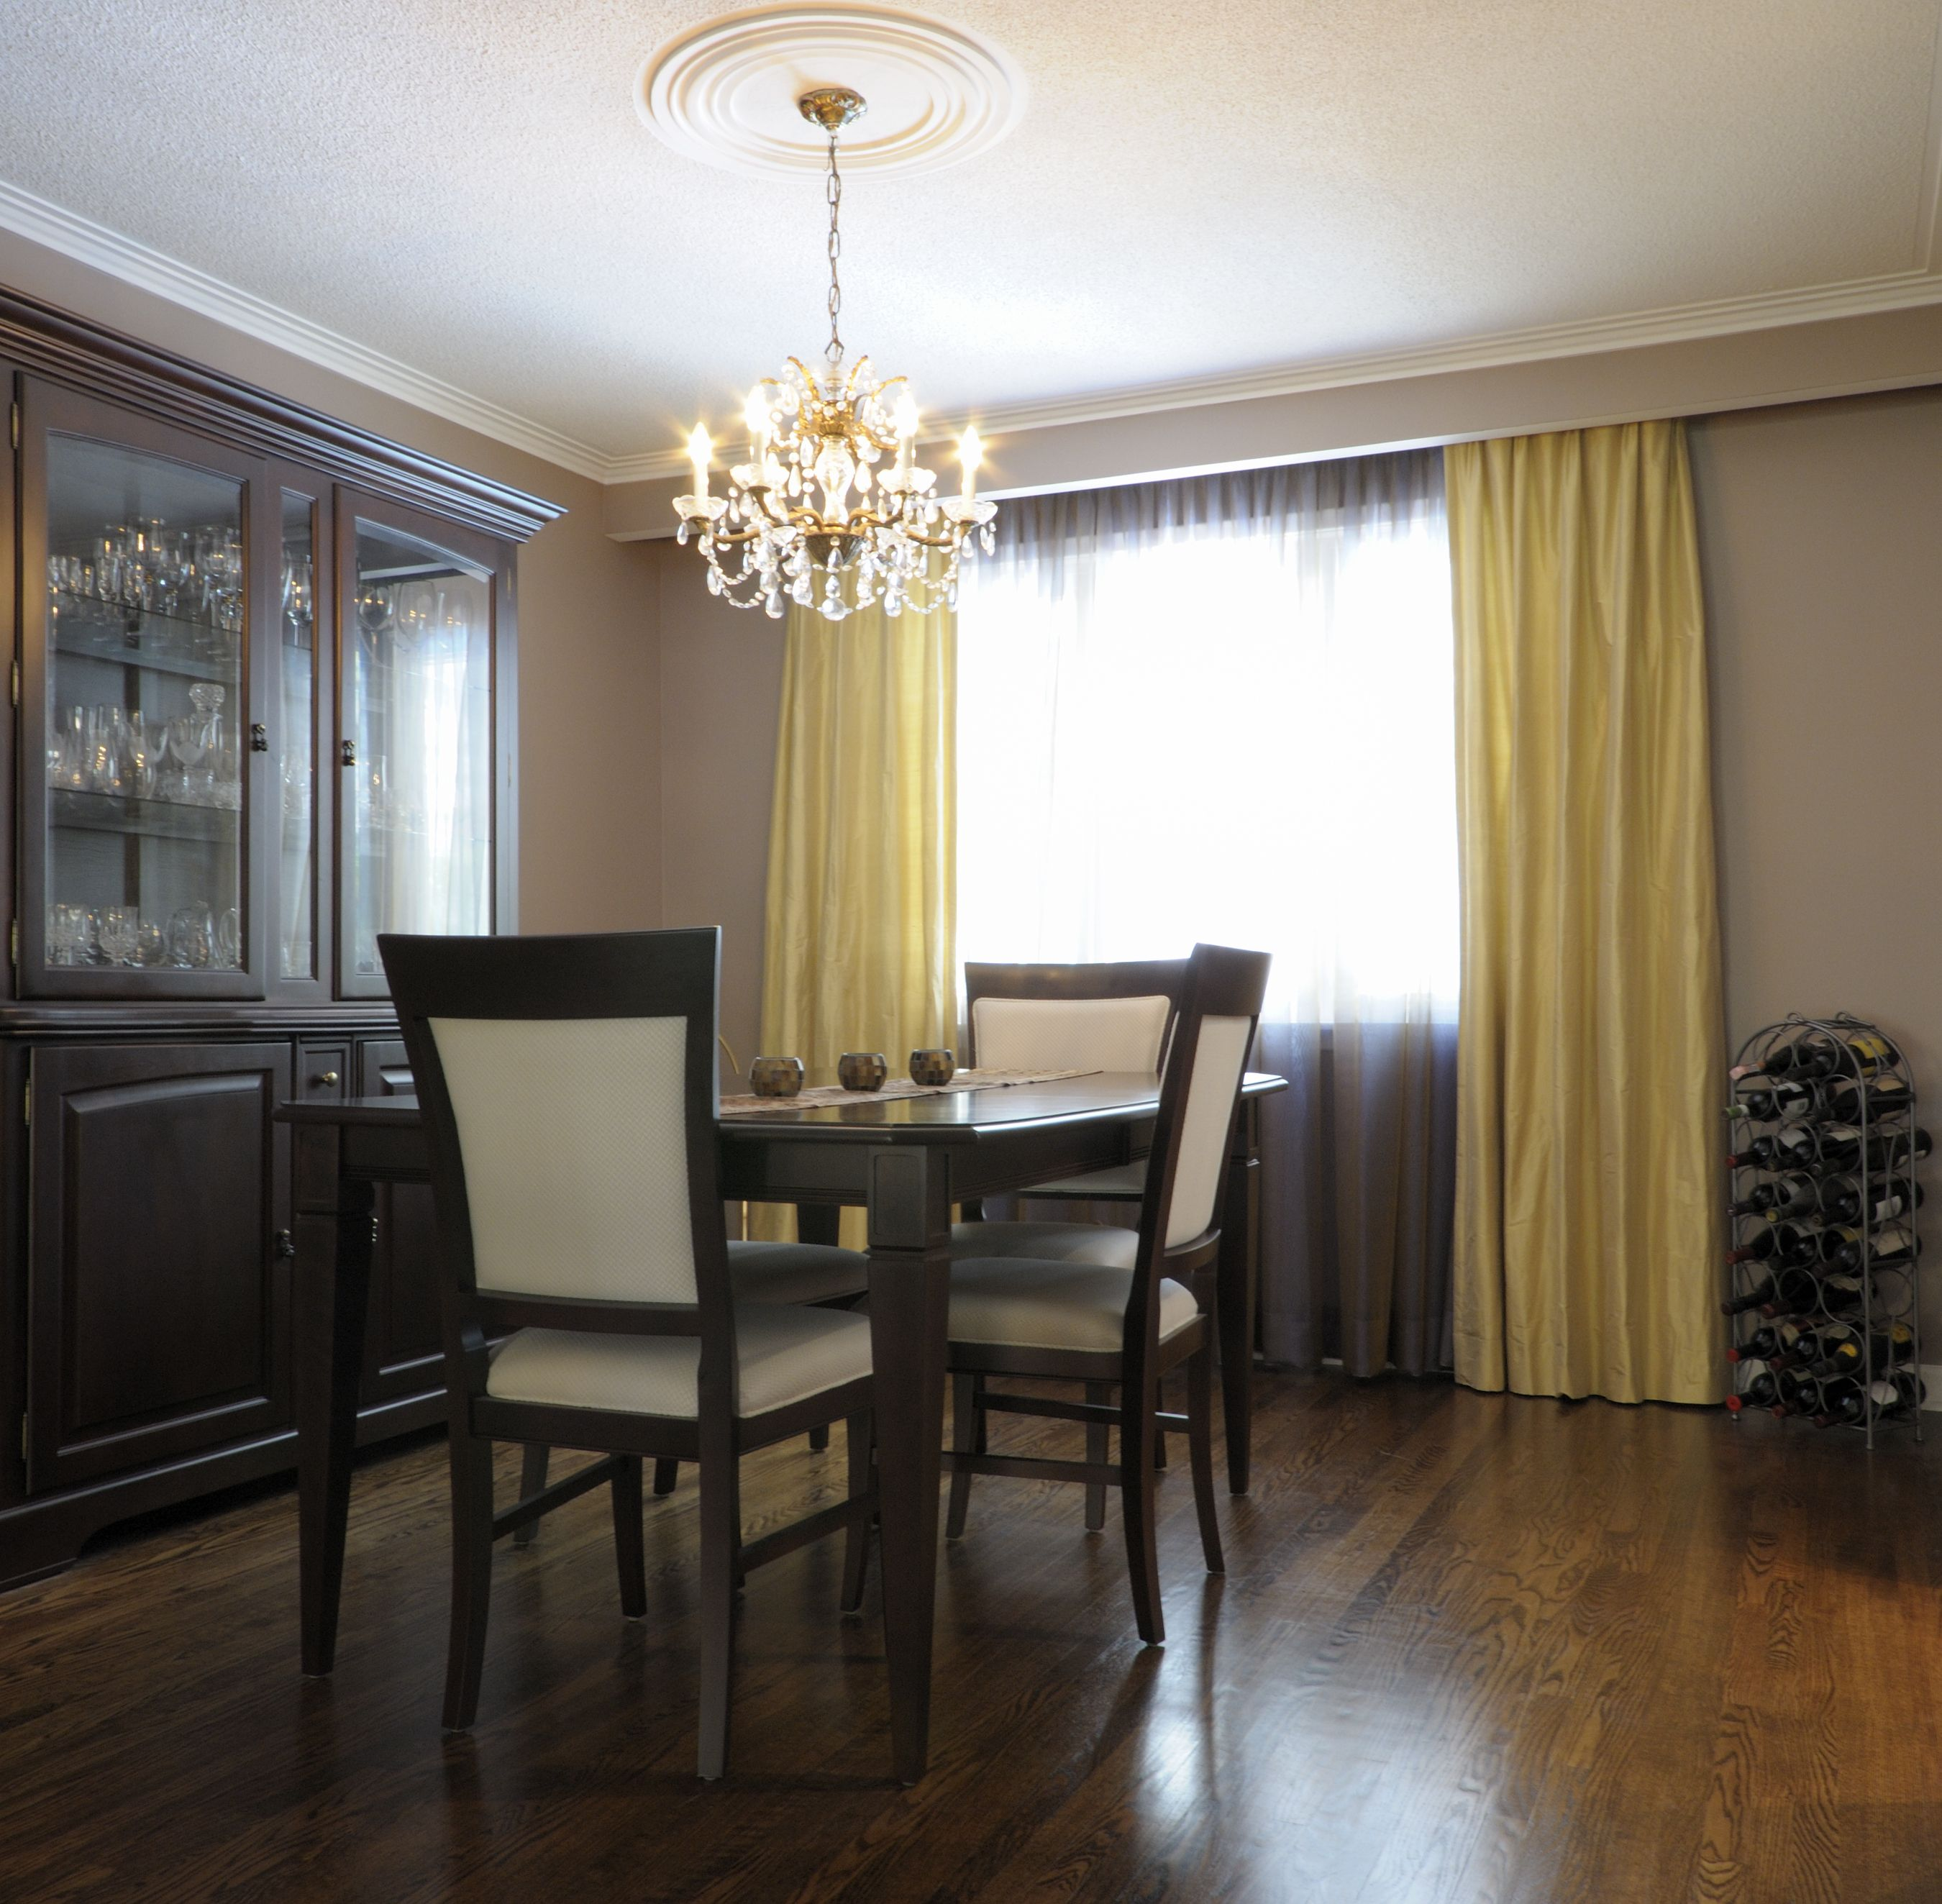 Room A Transitional Dining